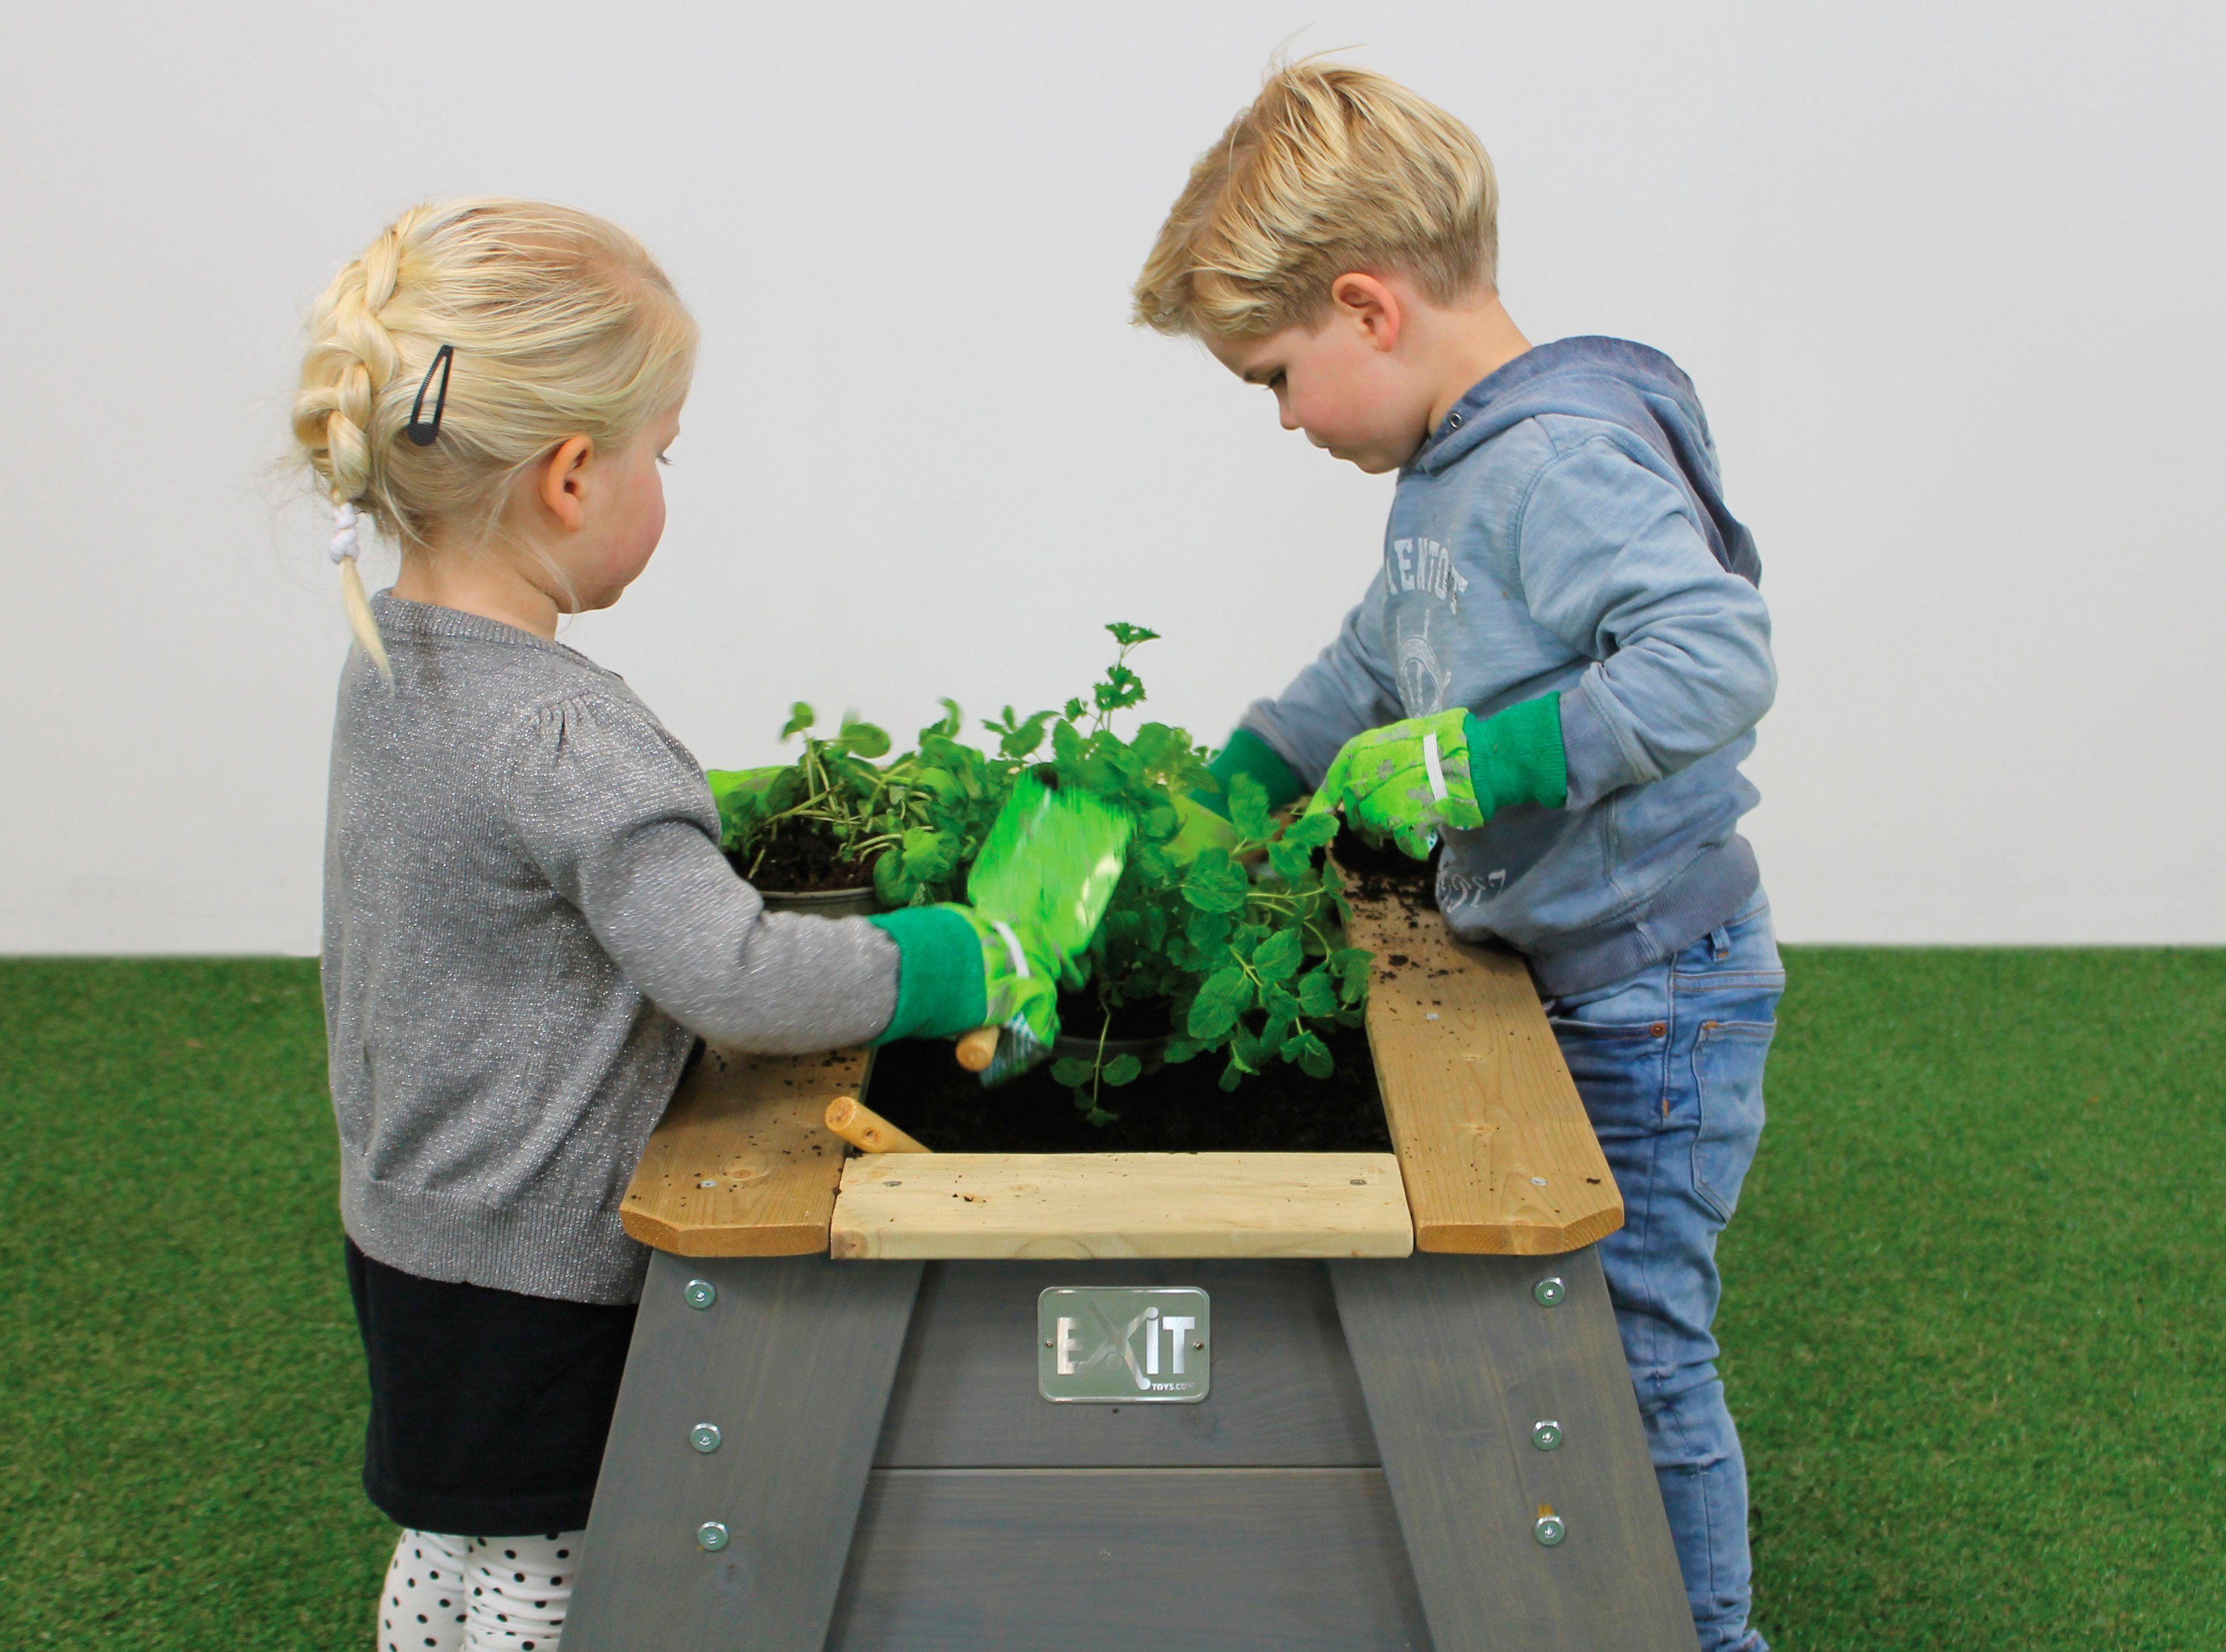 Spielzeug »EXIT Kids Planter Table«